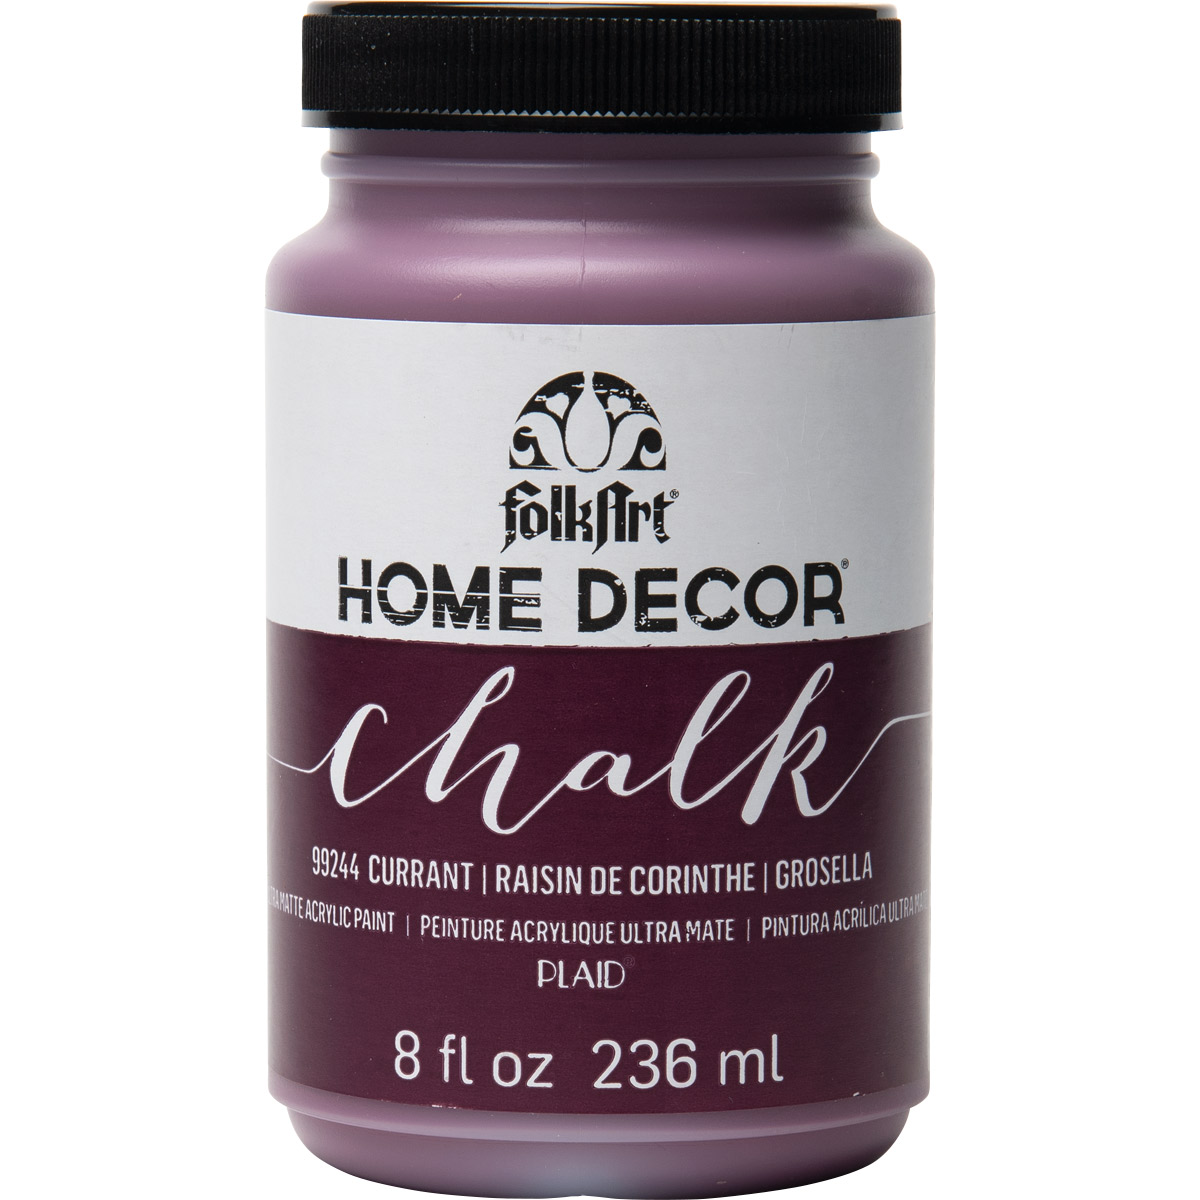 FolkArt ® Home Decor™ Chalk - Currant, 8 oz.